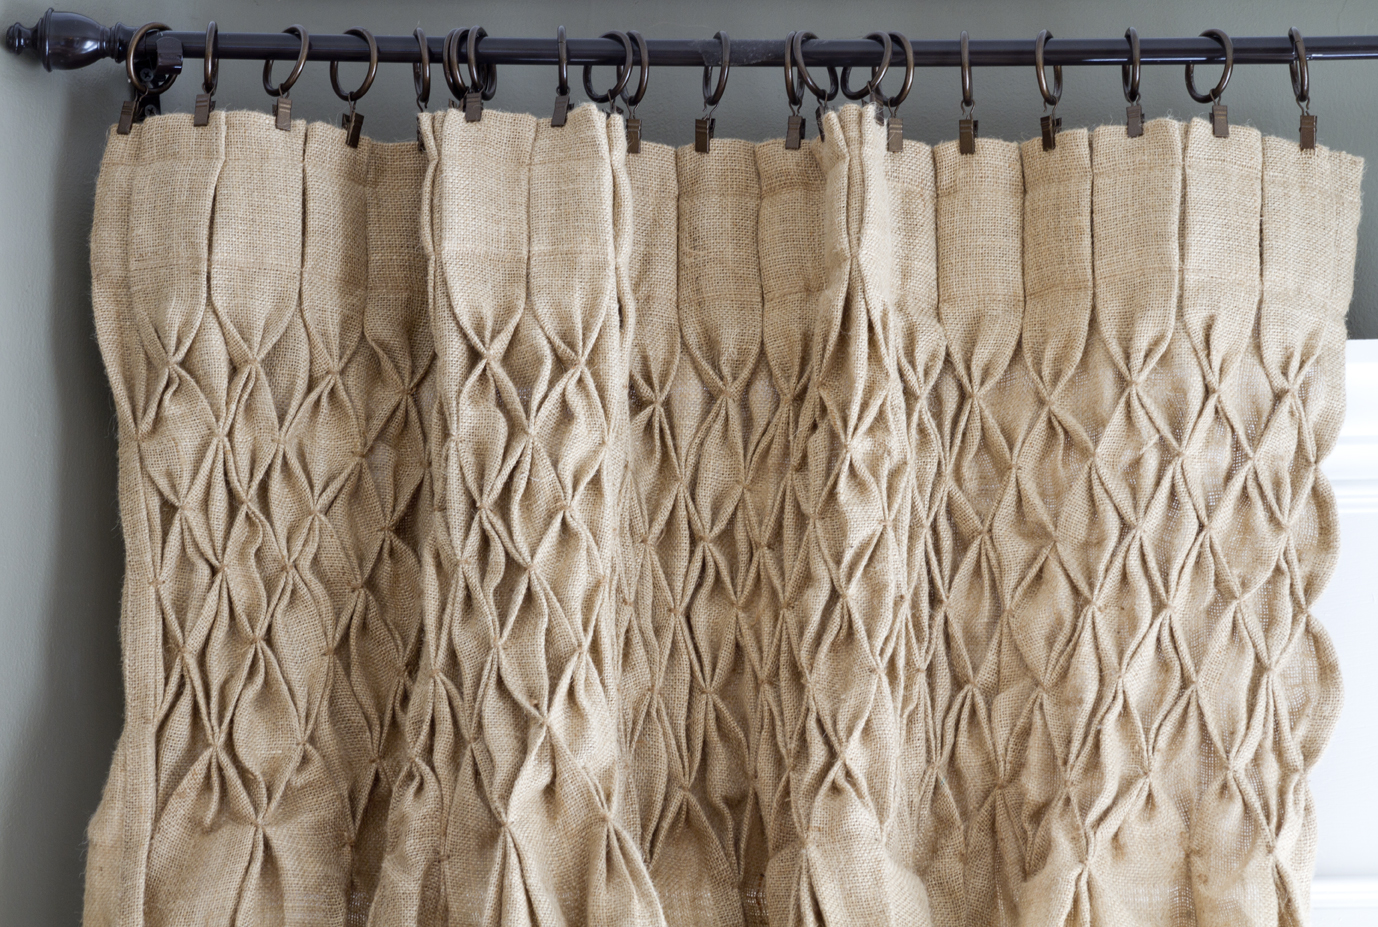 Diy Burlap Kitchen Curtains In smocked burlap curtains